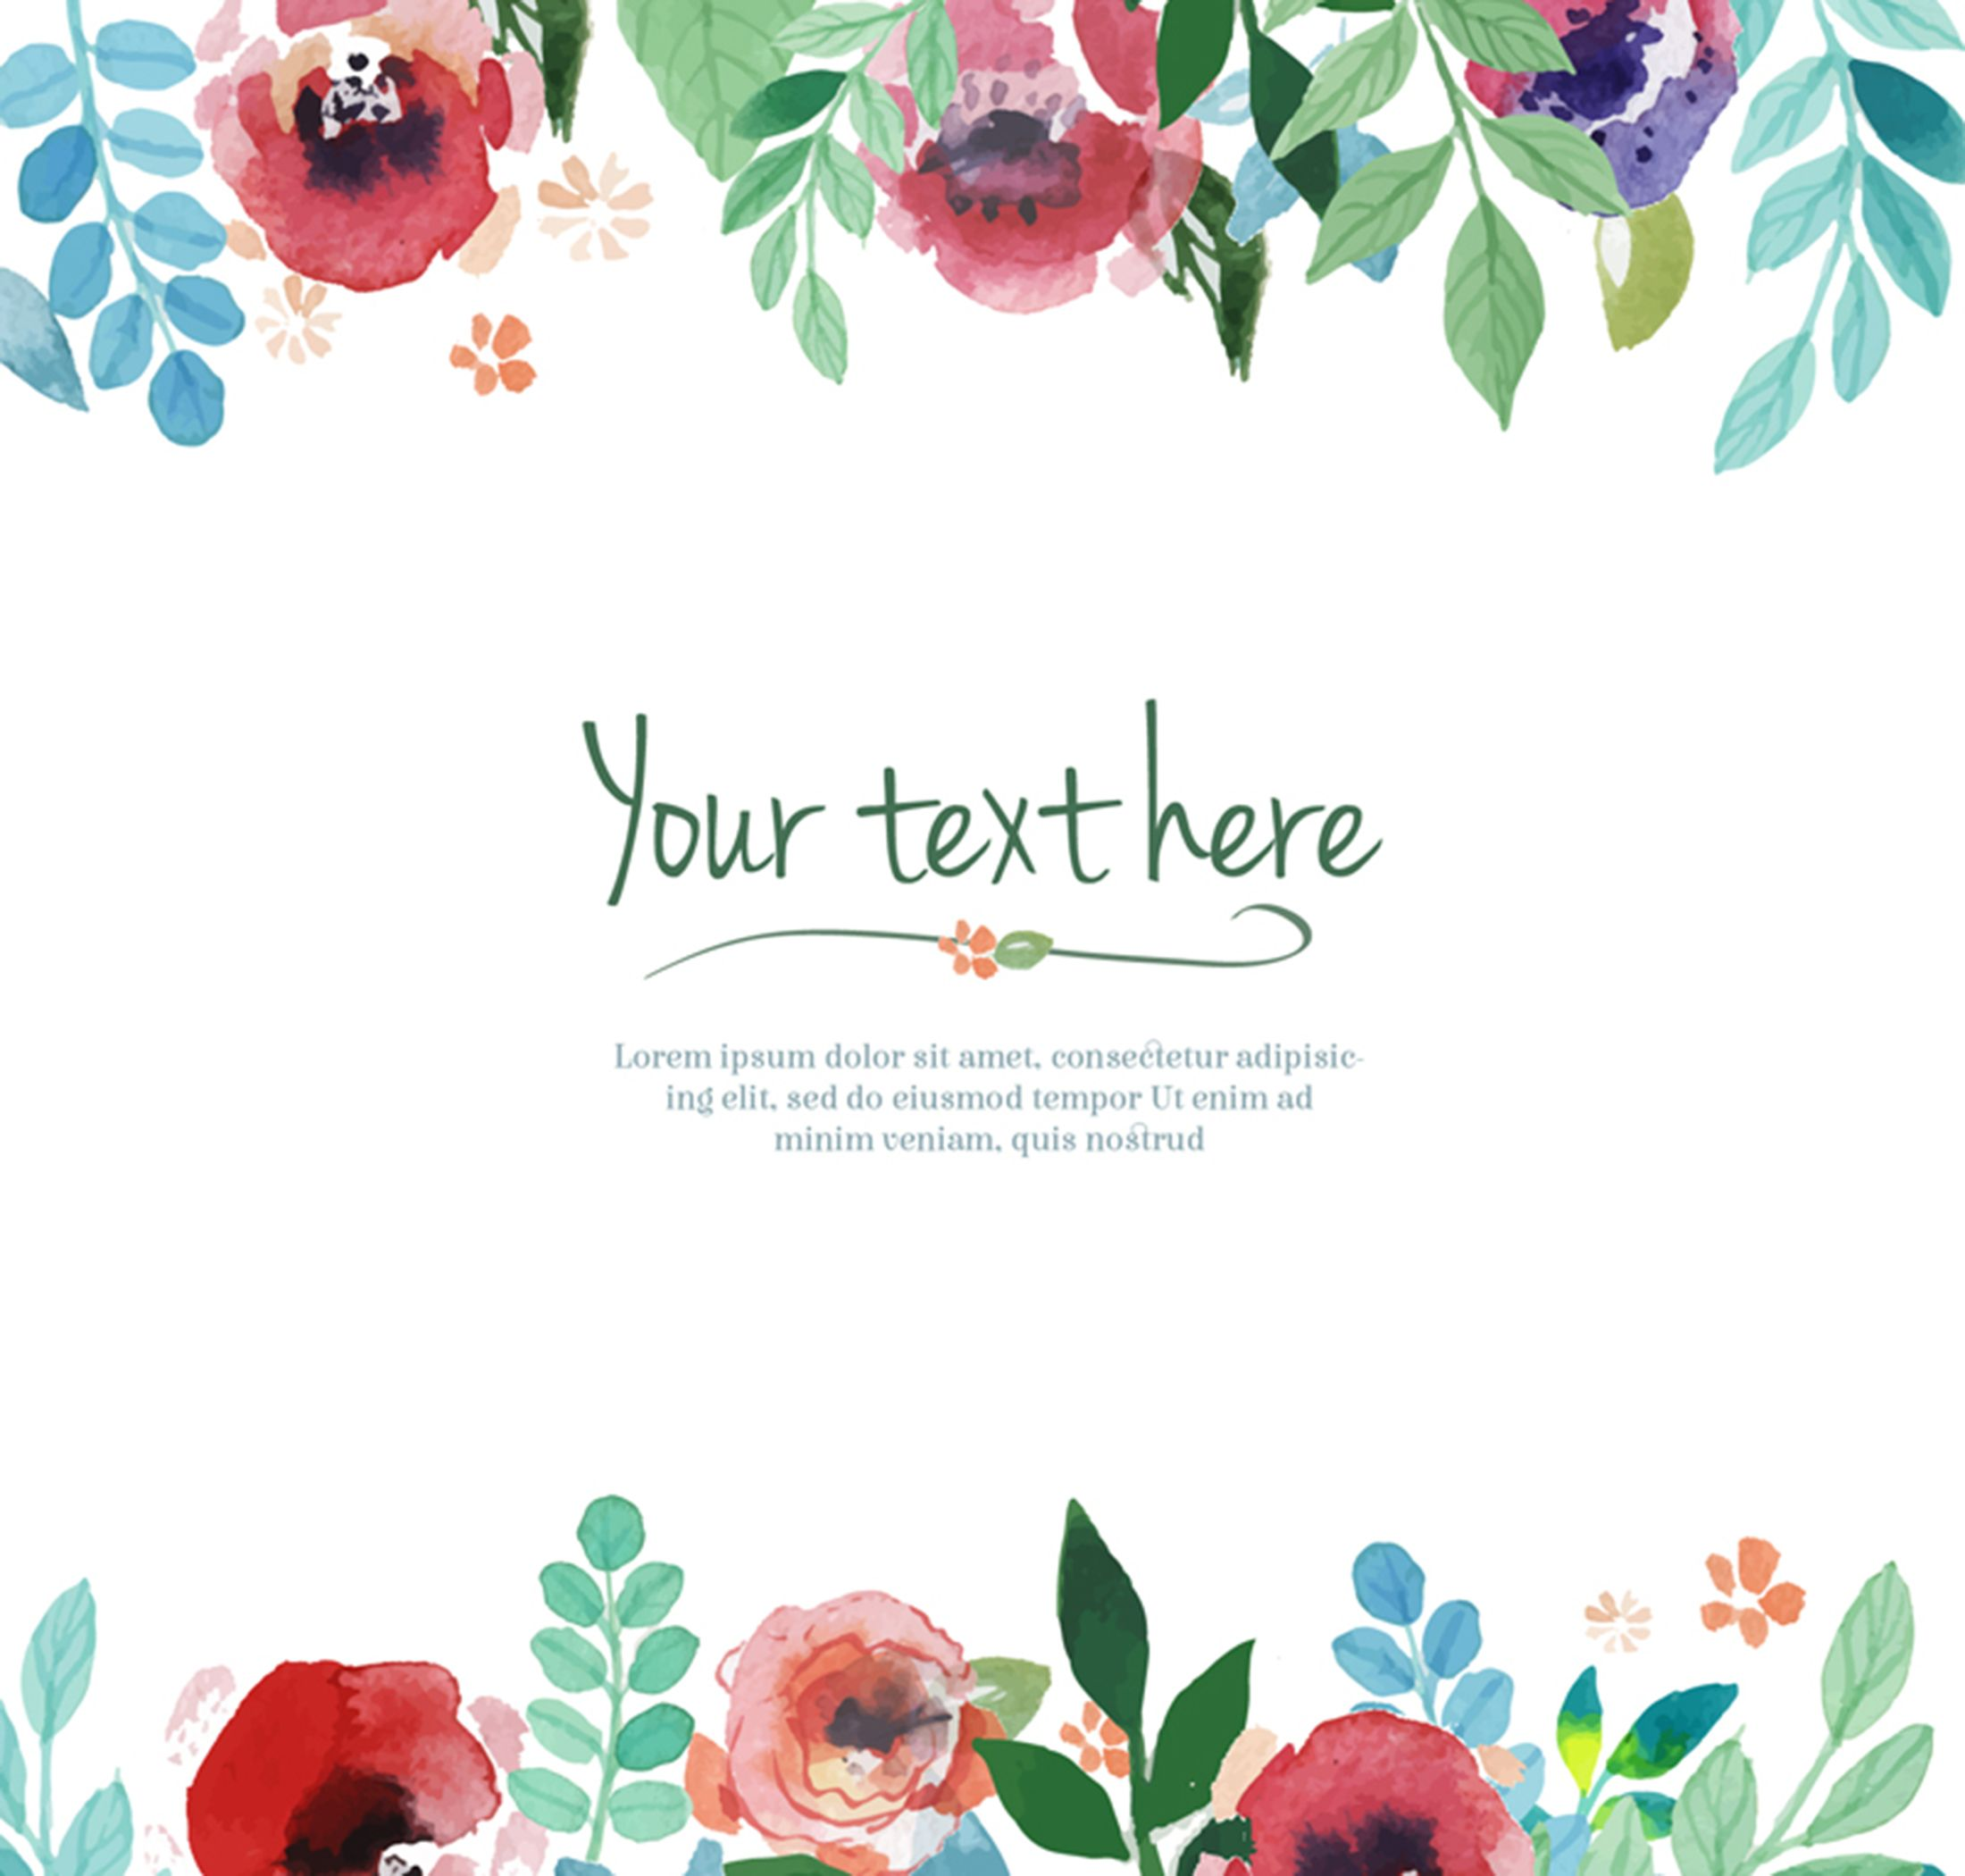 Watercolor Floral Border Background Material In 2020 Floral